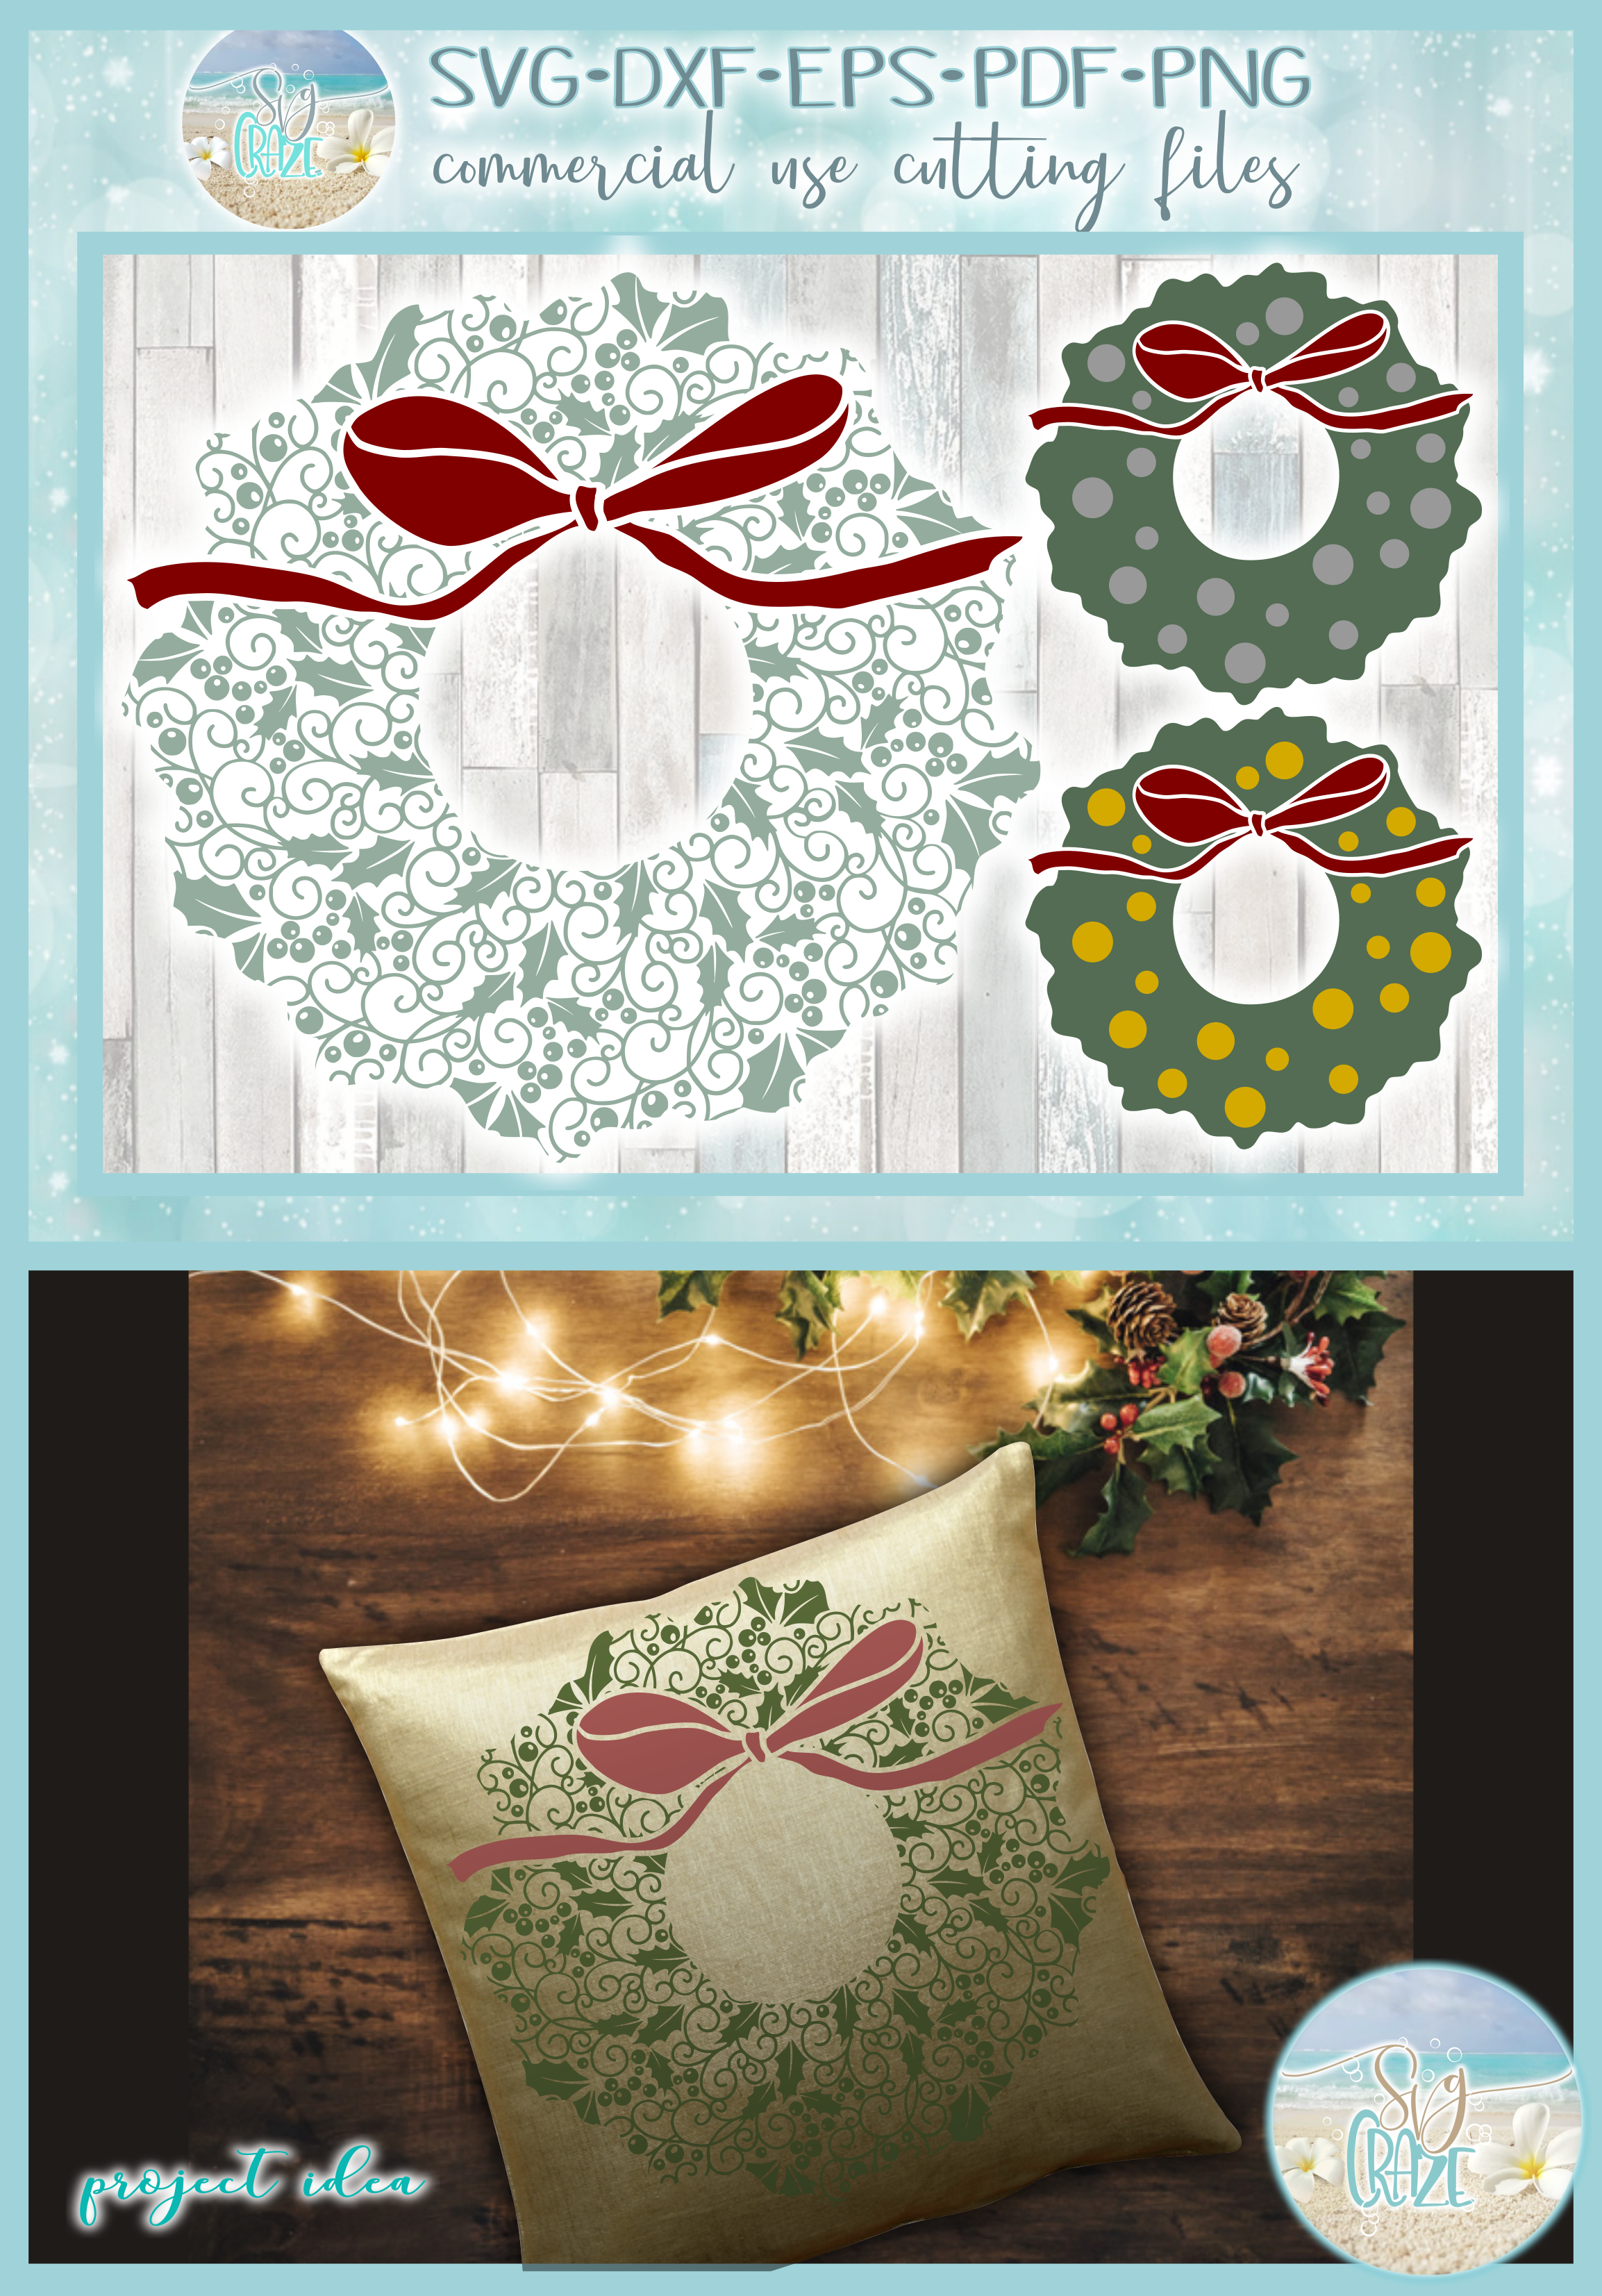 Christmas Wreath with Bow Mandala SVG Dxf Eps Png PDF files example image 4